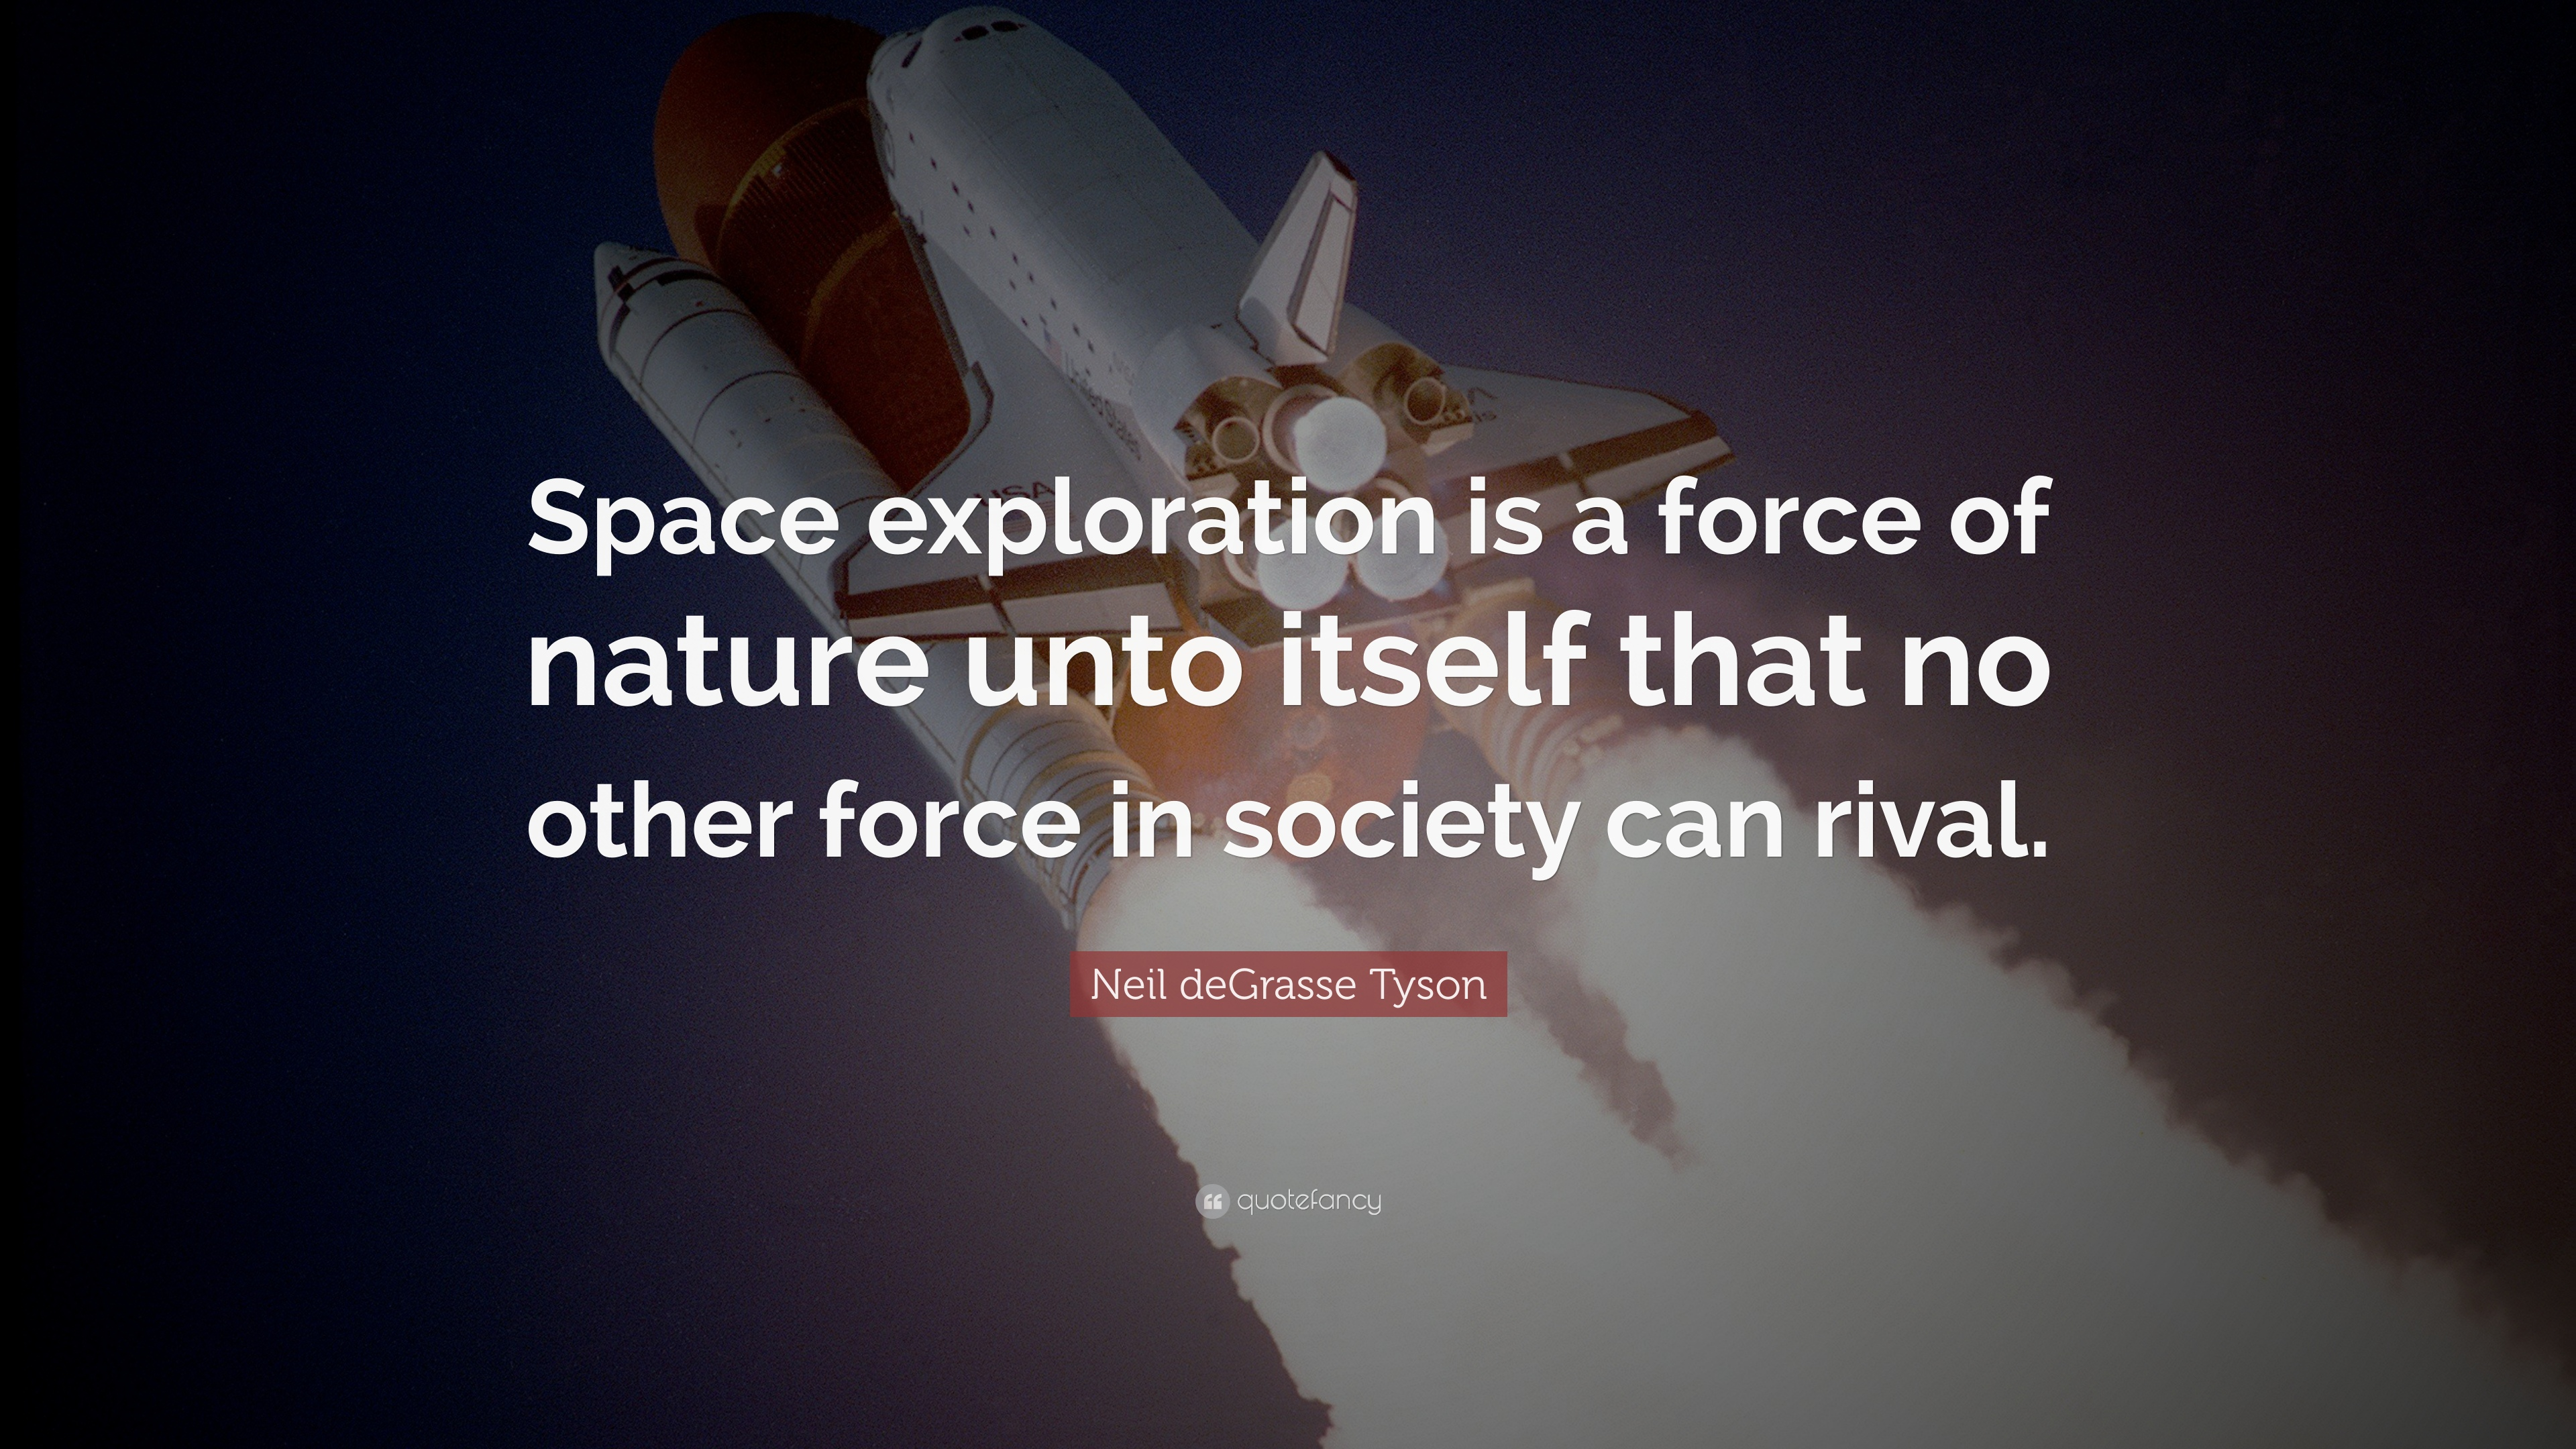 Neil DeGrasse Tyson Quotes (100 Wallpapers)